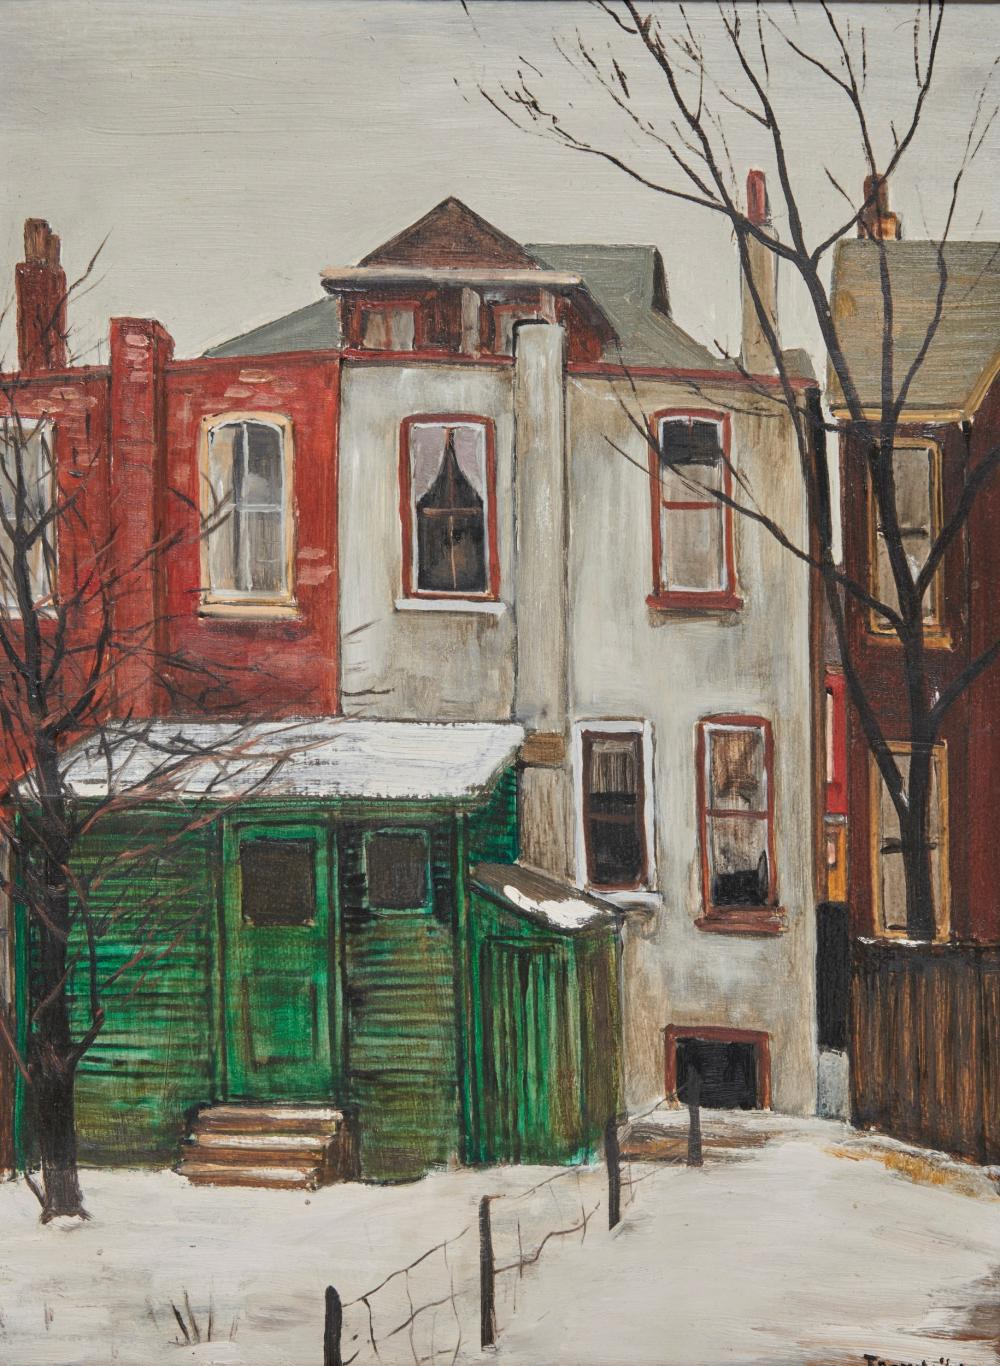 ALBERT JACQUES FRANCK, (Canadian, 1899-1973), Behind Rose Avenue, oil on masonite, 16 x 12 in., frame: 25 1/4 x 21 1/4 in.